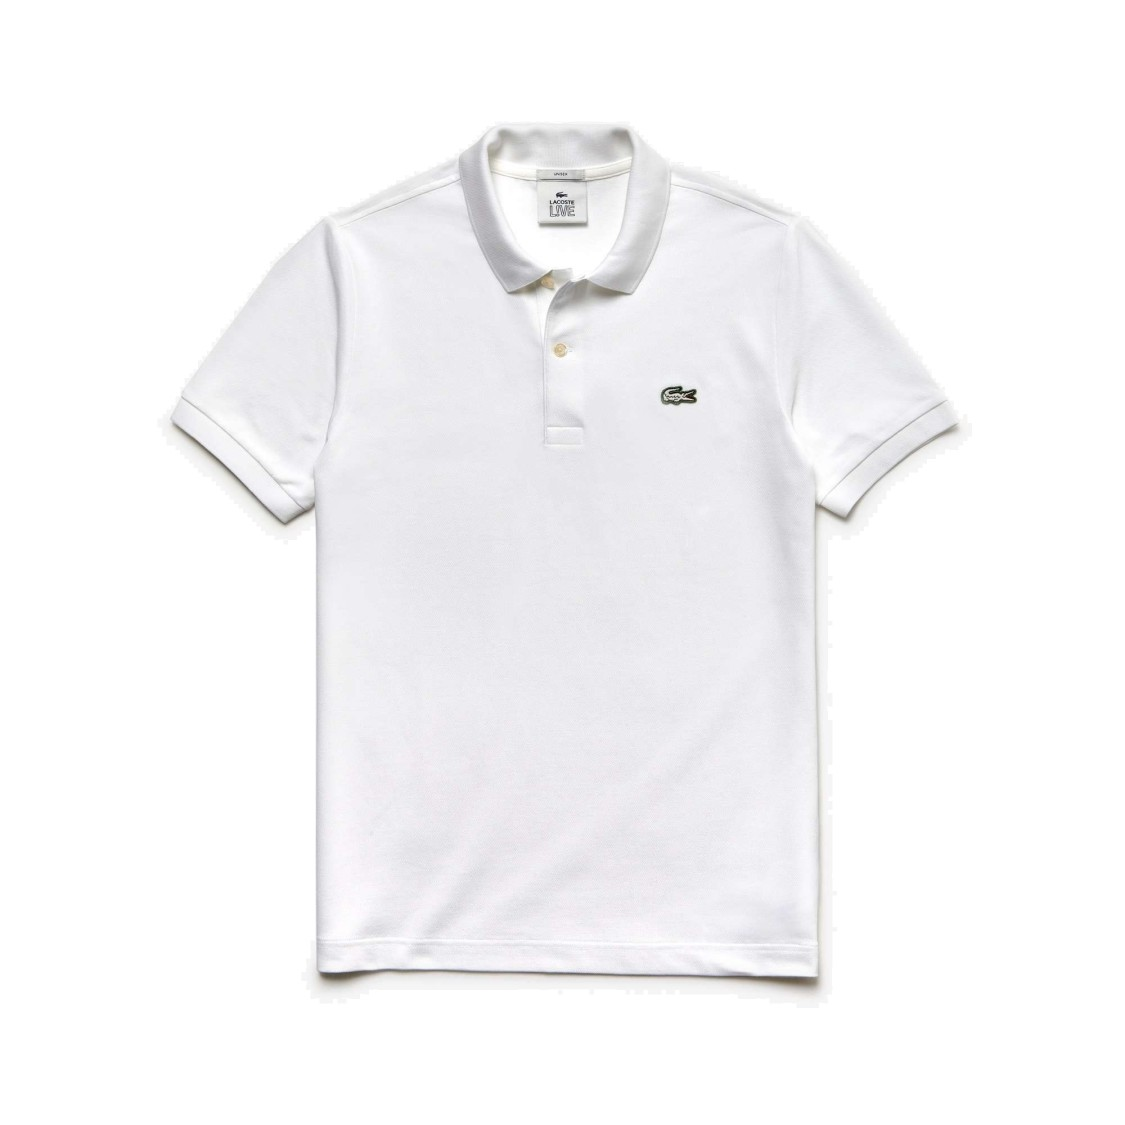 Lacoste Petit Pique Slim Fit Polo Shirt In White